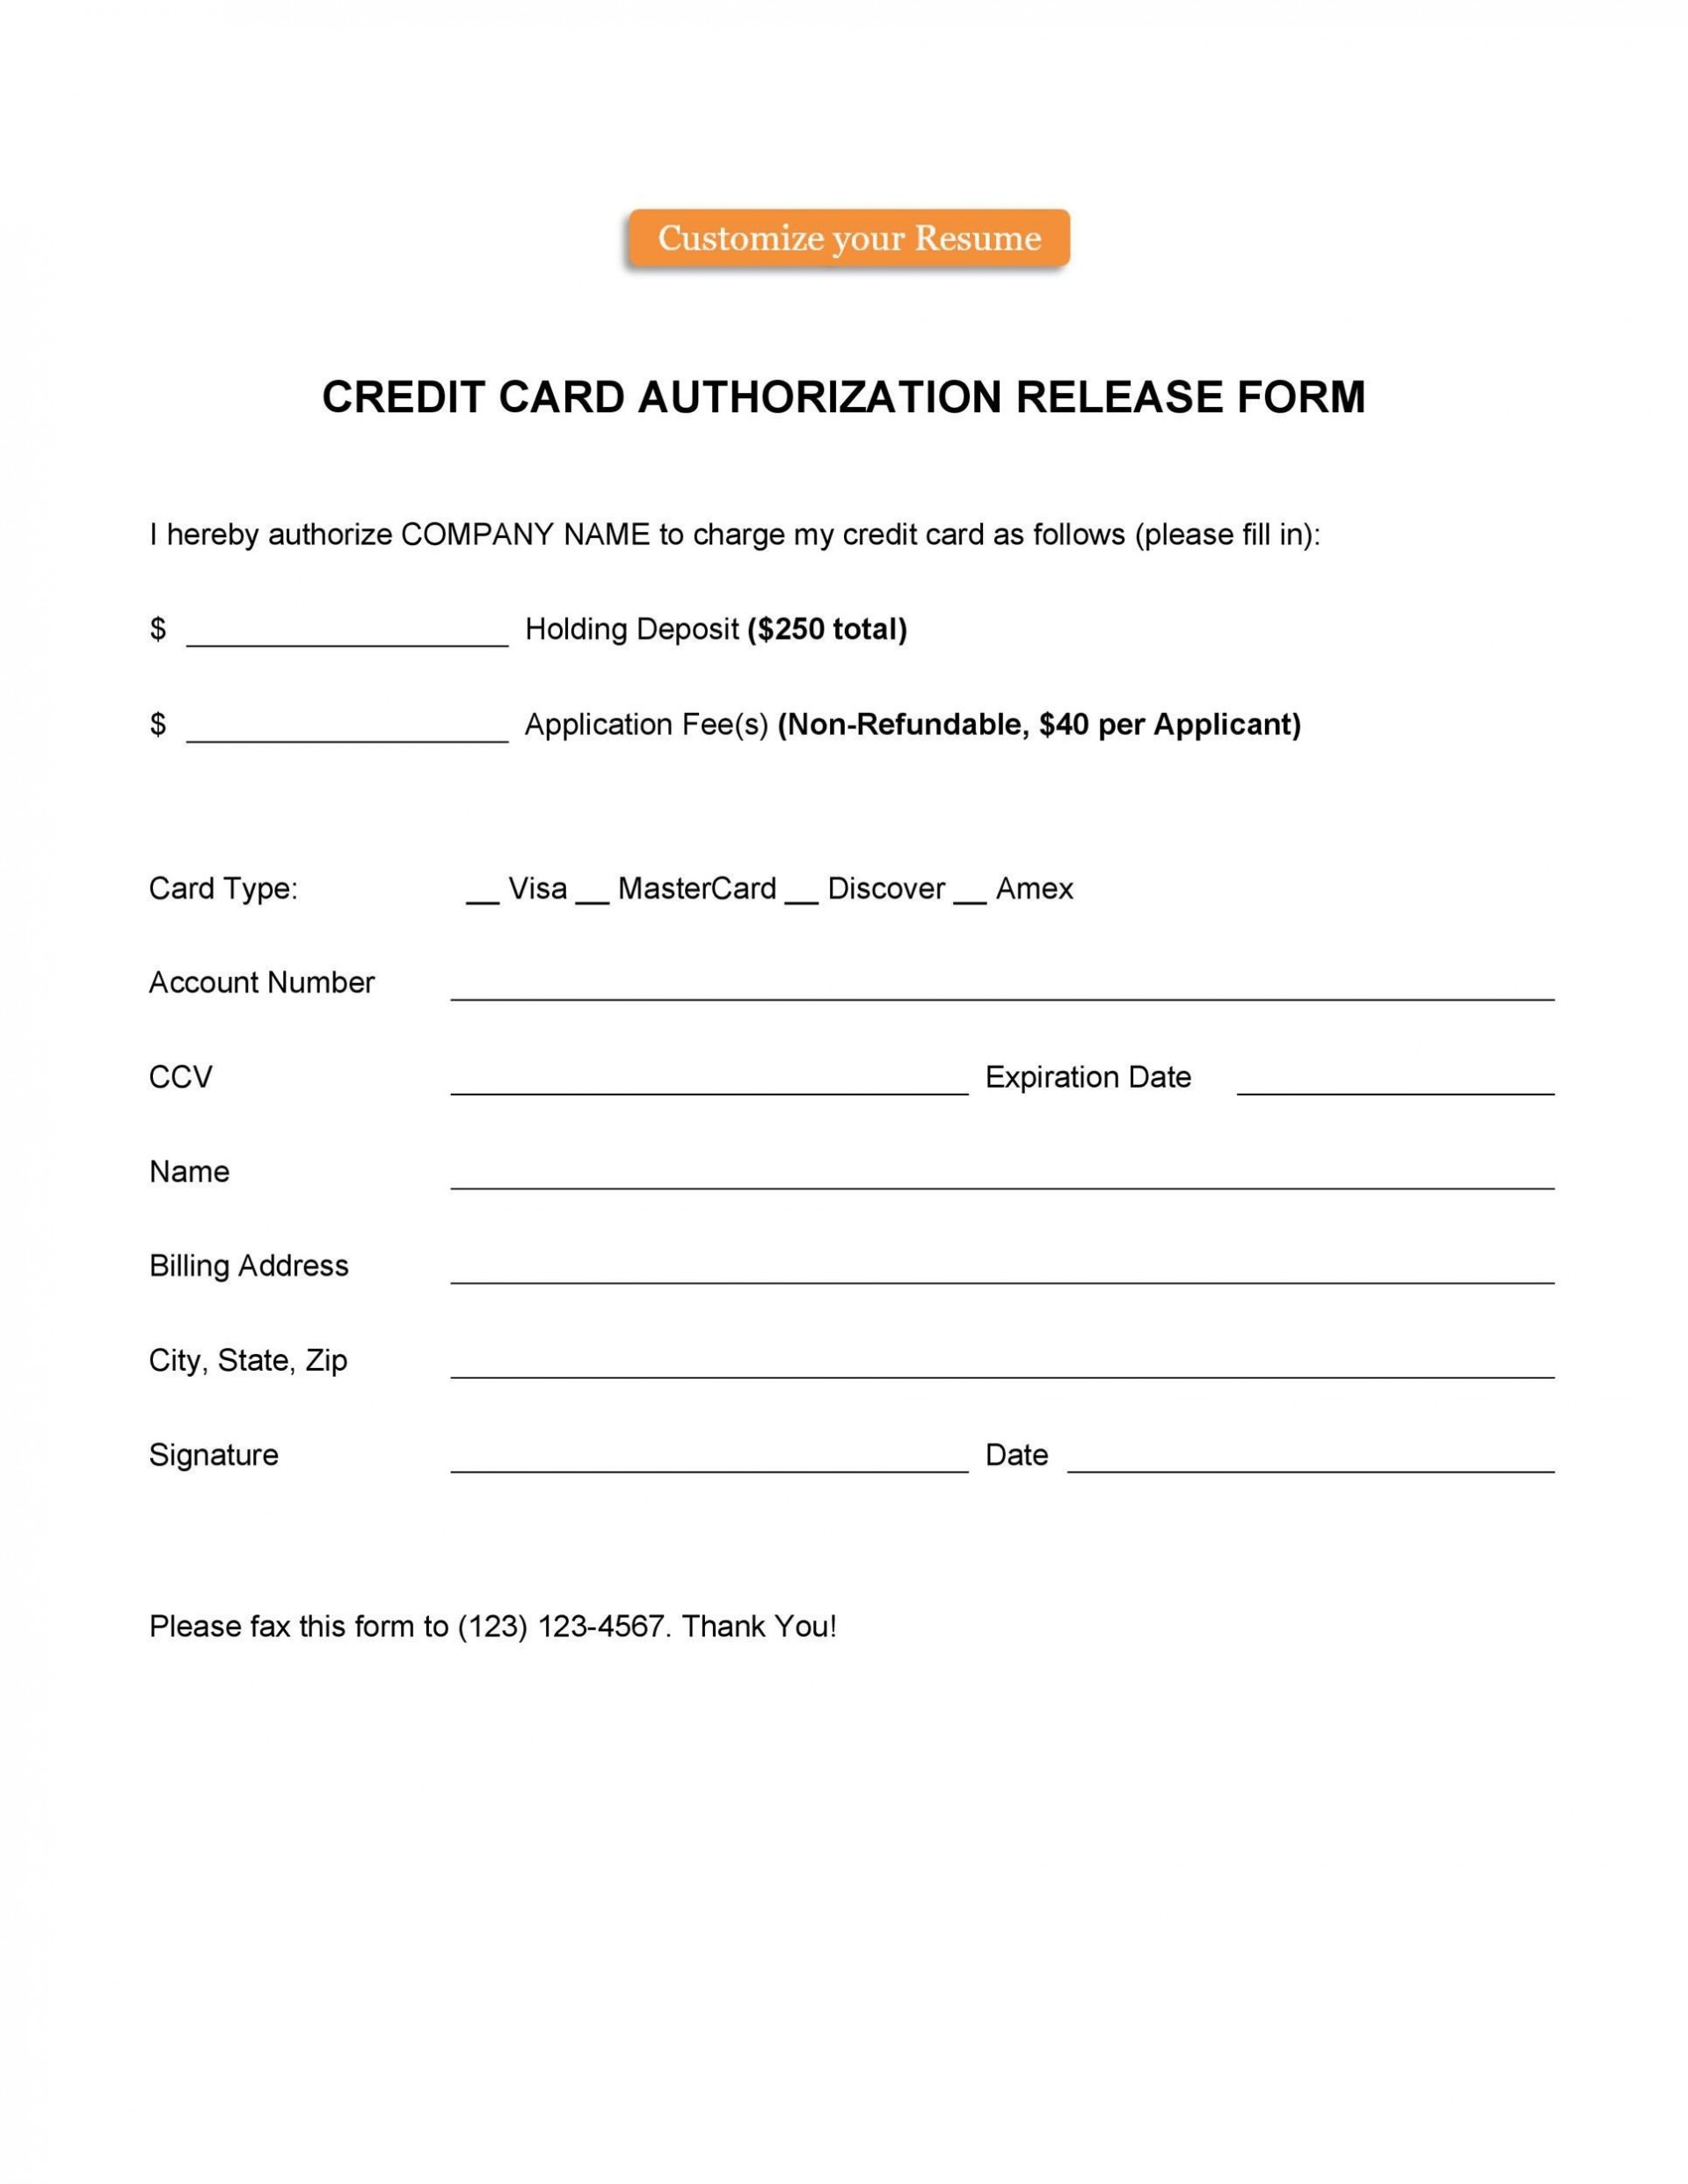 001 Dreaded Credit Card Form Template Excel Image  Authorization Payment1920